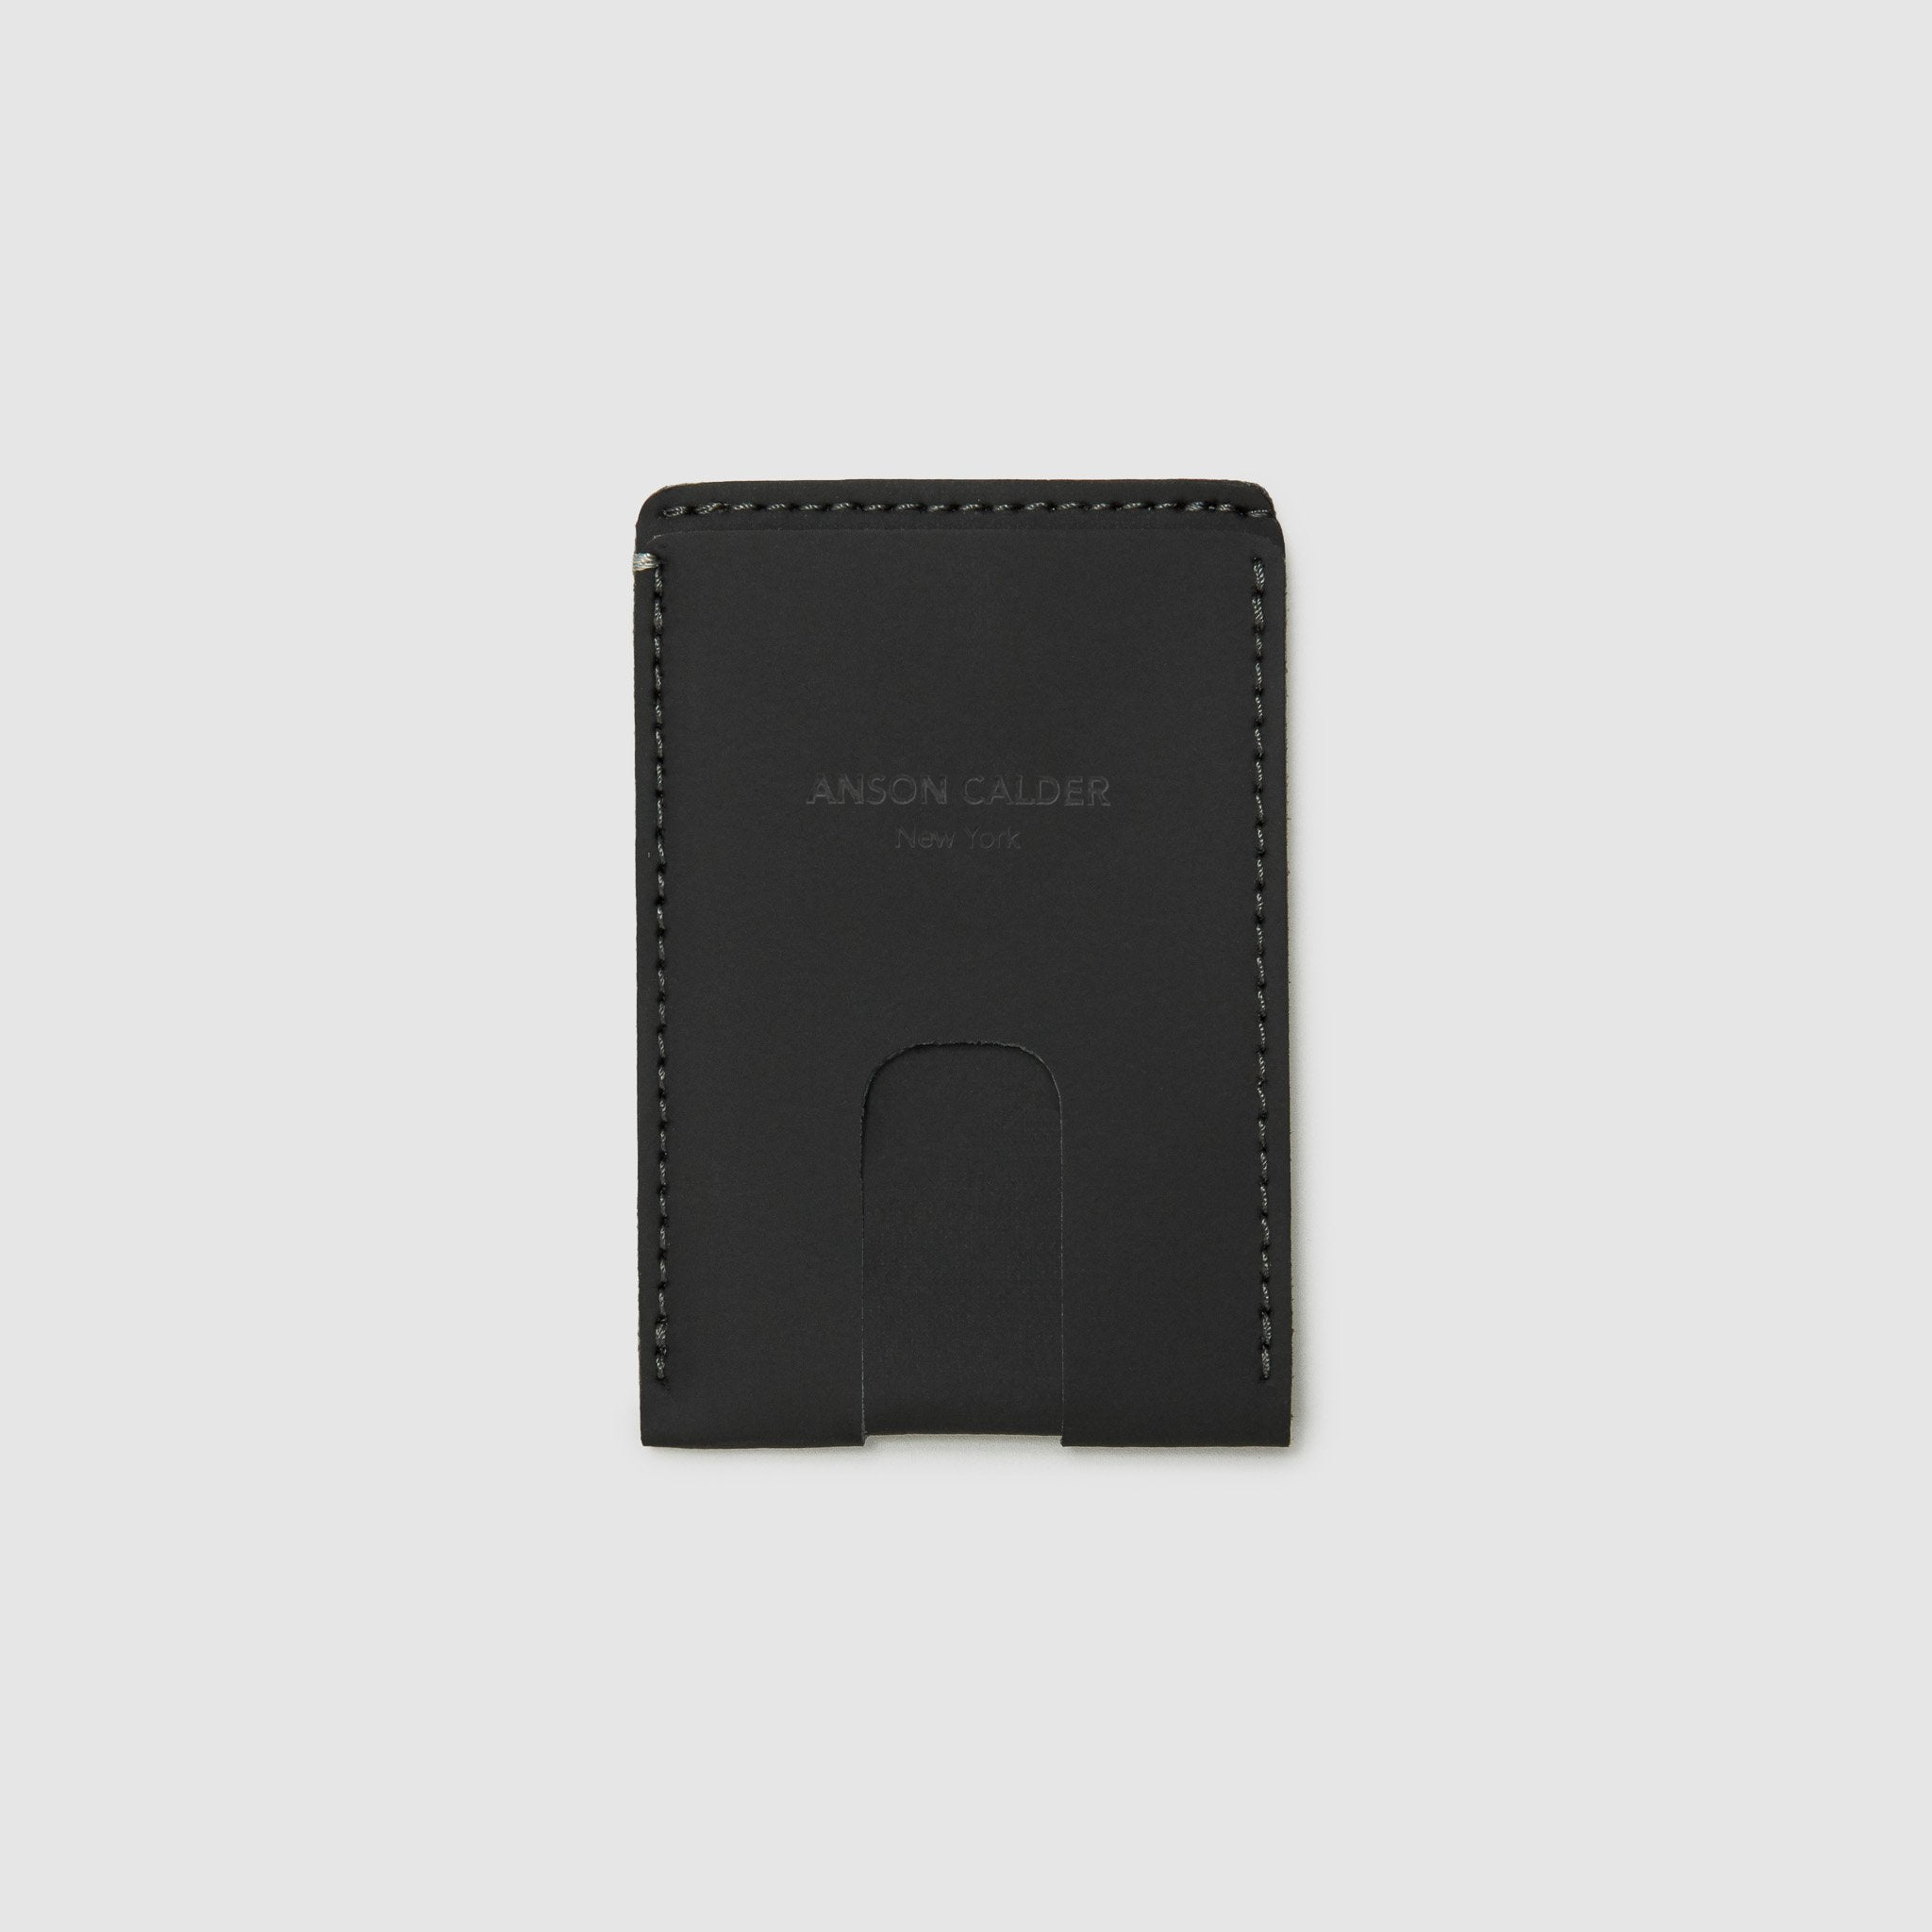 card wallet with cash pocket ANSON CALDER sport leather _sport-black